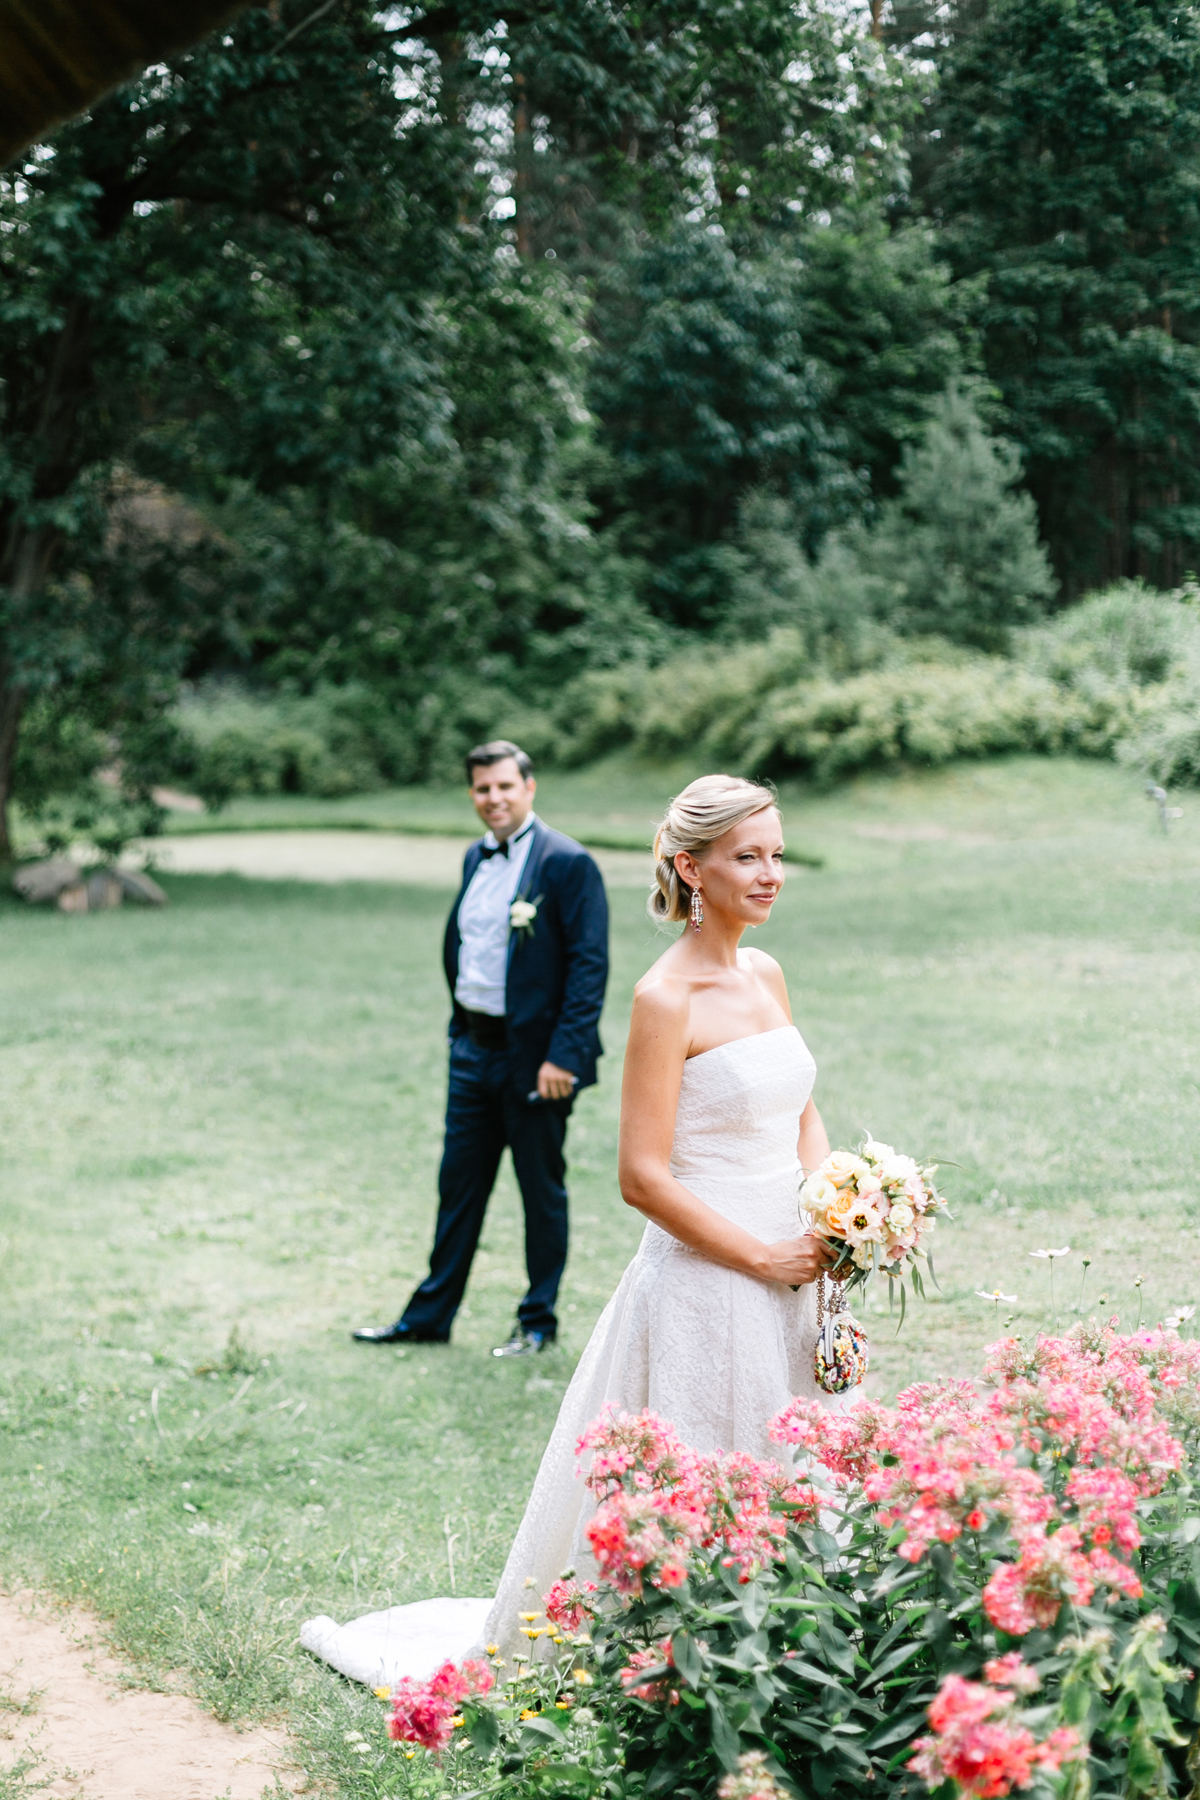 542-Petersone-Liene-wedding-blog